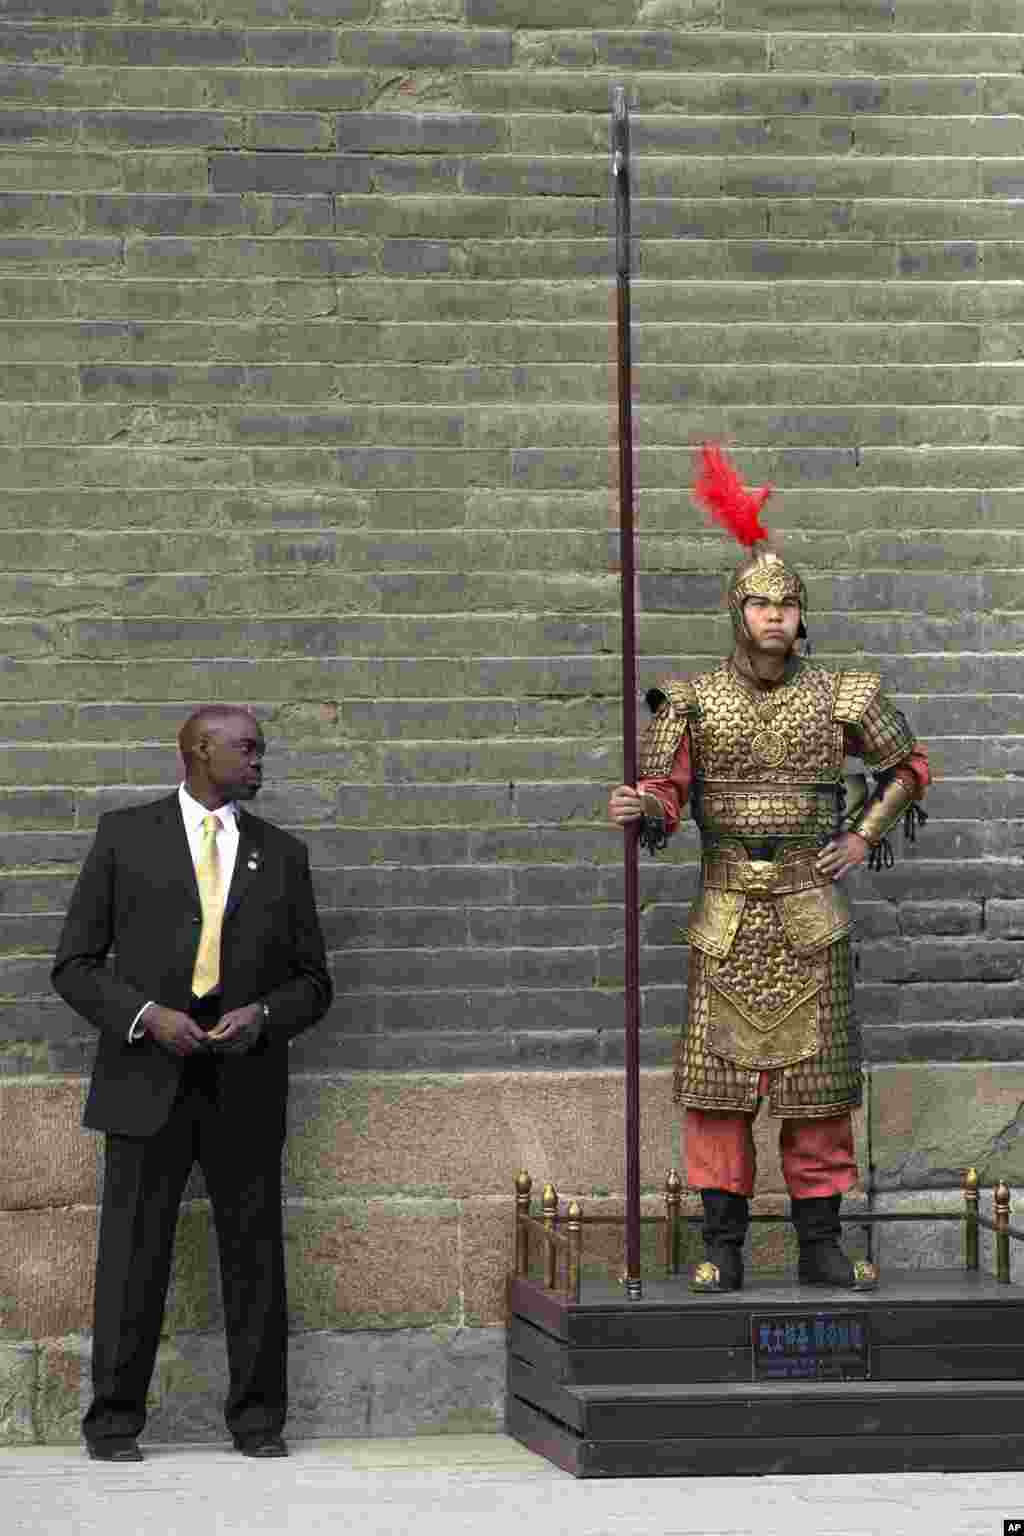 A U.S. secret service officer checks a Chinese performer dressed as an ancient warrior as U.S. first lady Michelle Obama visits a nearby city wall in Xi'an, in northwestern China's Shaanxi province.